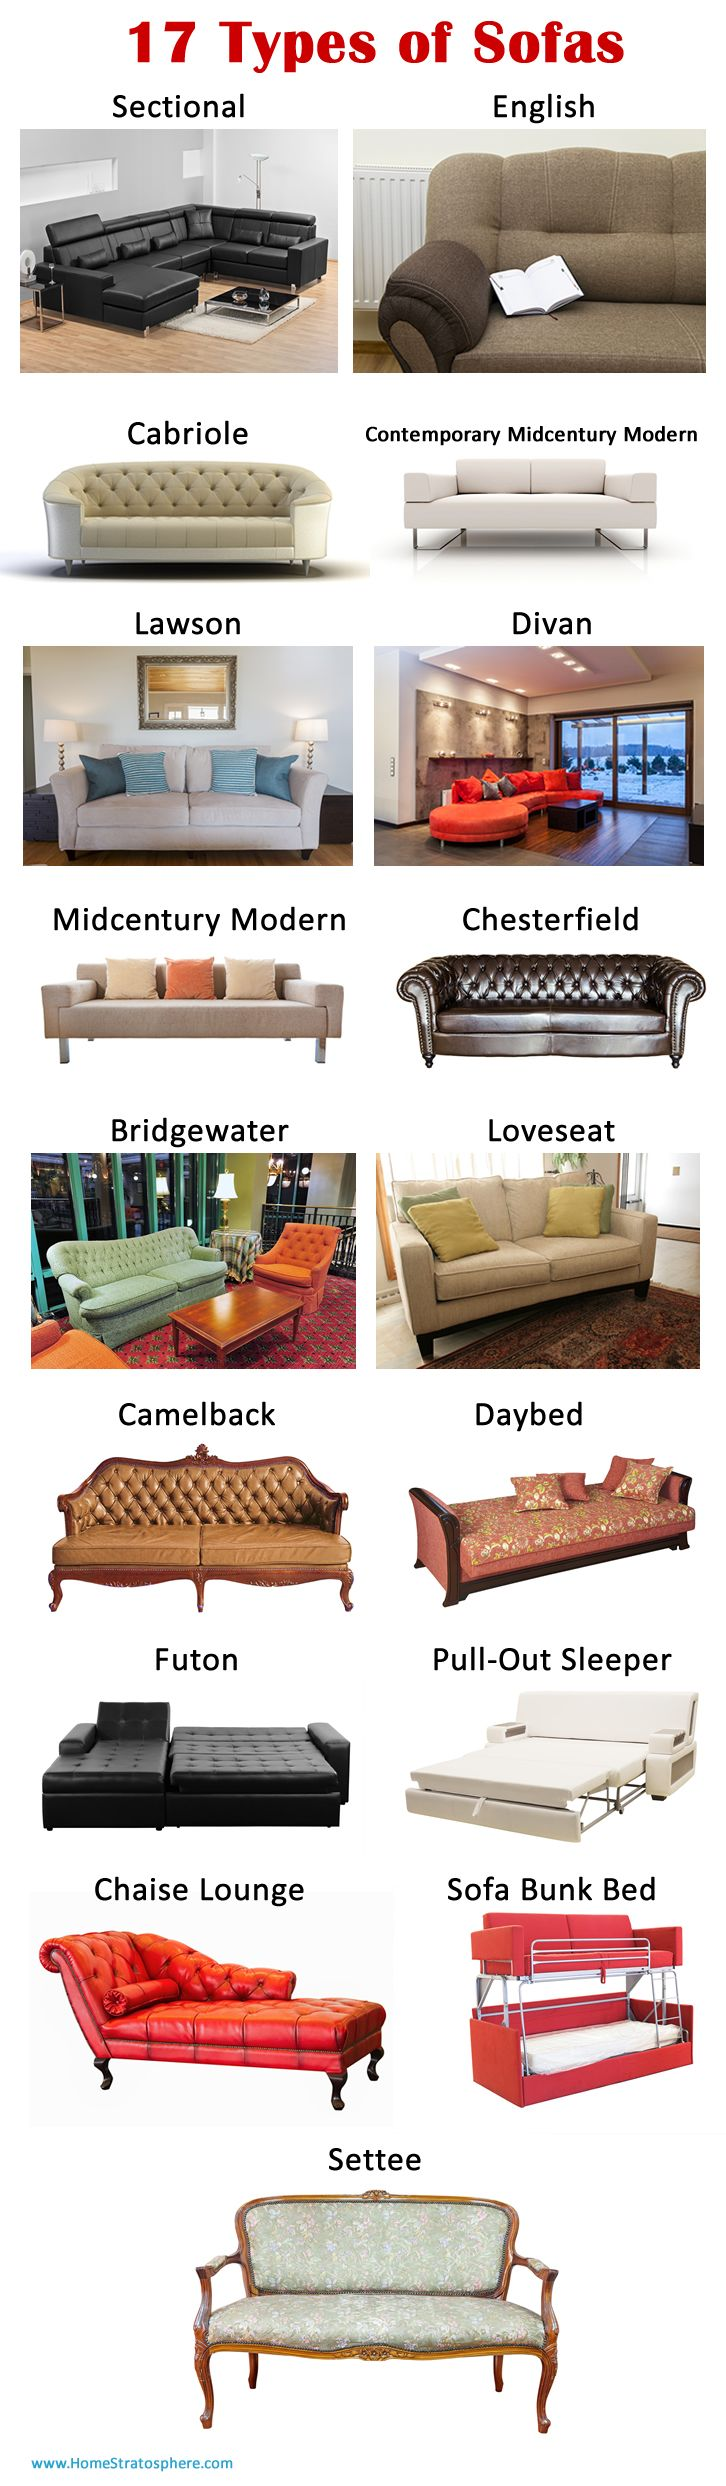 22 Types Of Sofas Couches Explained With Pictures Sofa